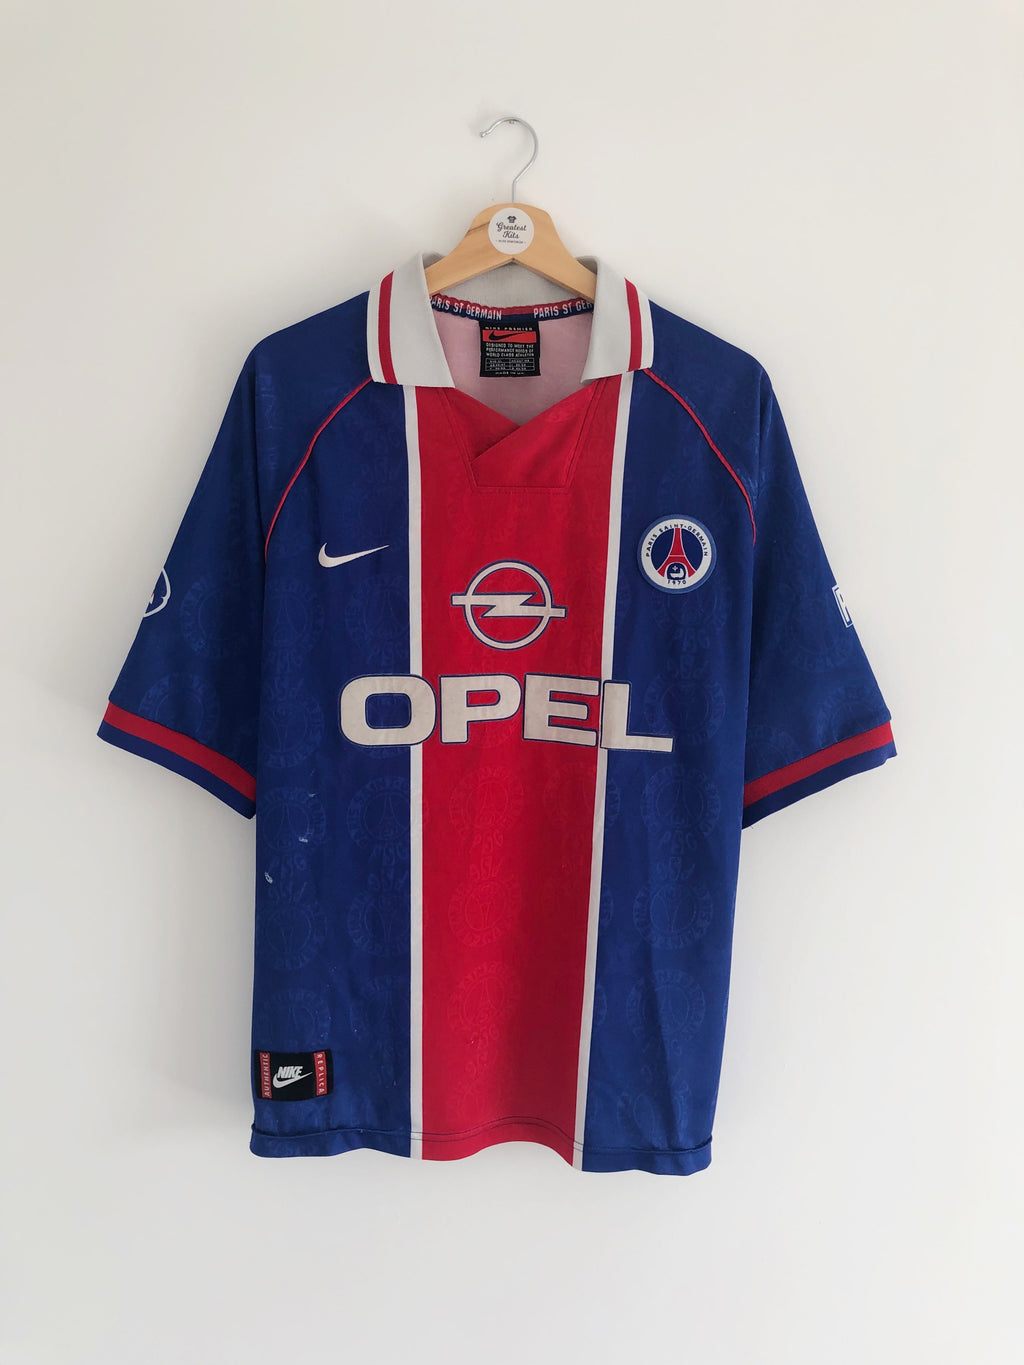 1996/97 Paris Saint-Germain Home Shirt (XL) 6/10